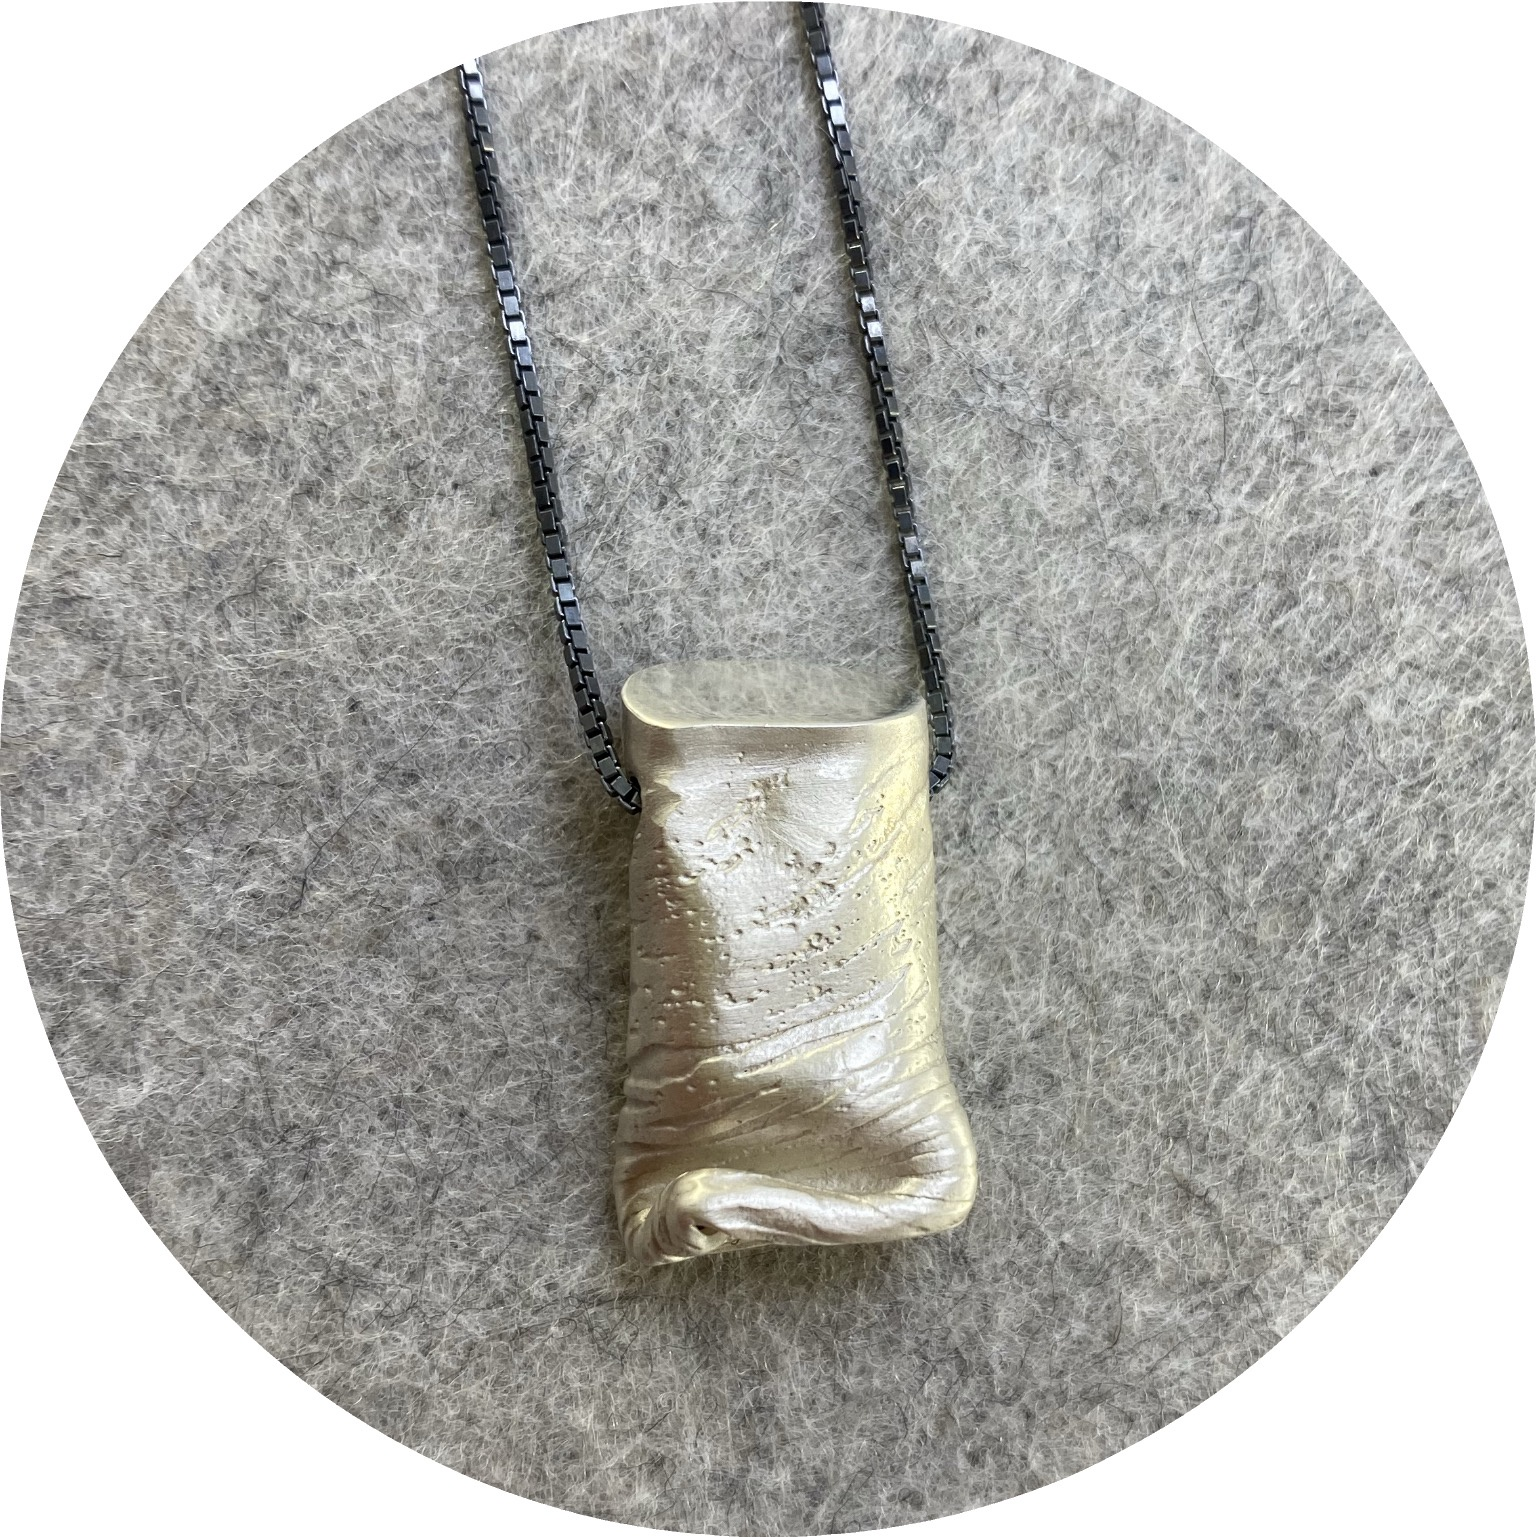 Robyn Clarke- Crushed pendant, etched. Sterling silver pendant and chain.